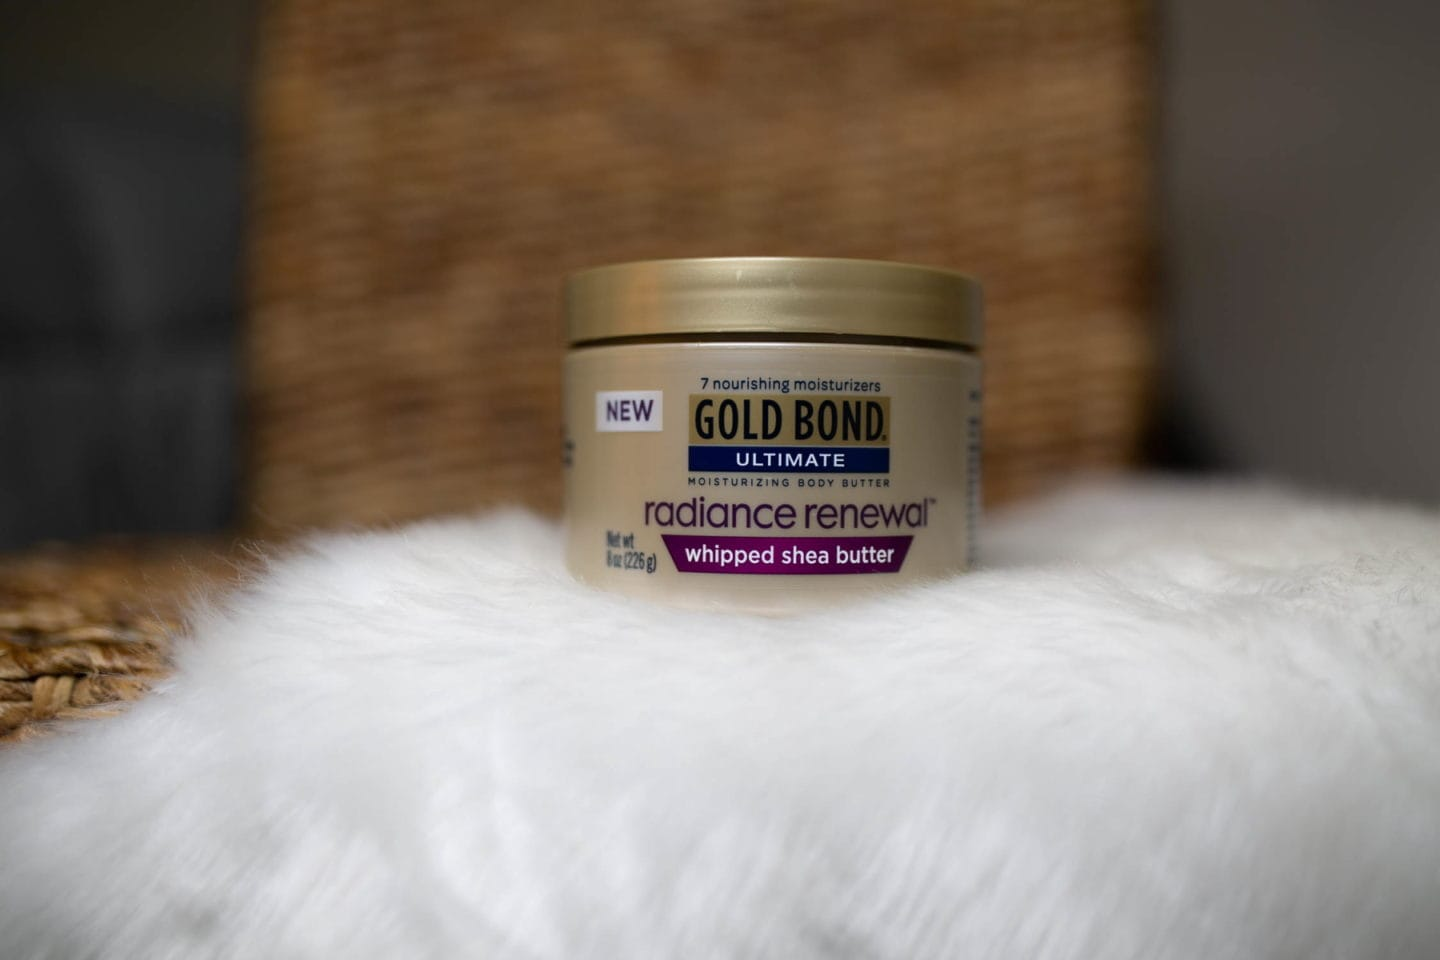 #bodycaretips After hearing so much about Gold Bond Ultimate, I gave the Whipped Shea Butter a try. I loved it so much that I brought the cream and lotion with me to Alaska. I wrote about the good, bad, and ugly in this blog post. Get the scoop! #moisturizer #moisturizerforoilyskin